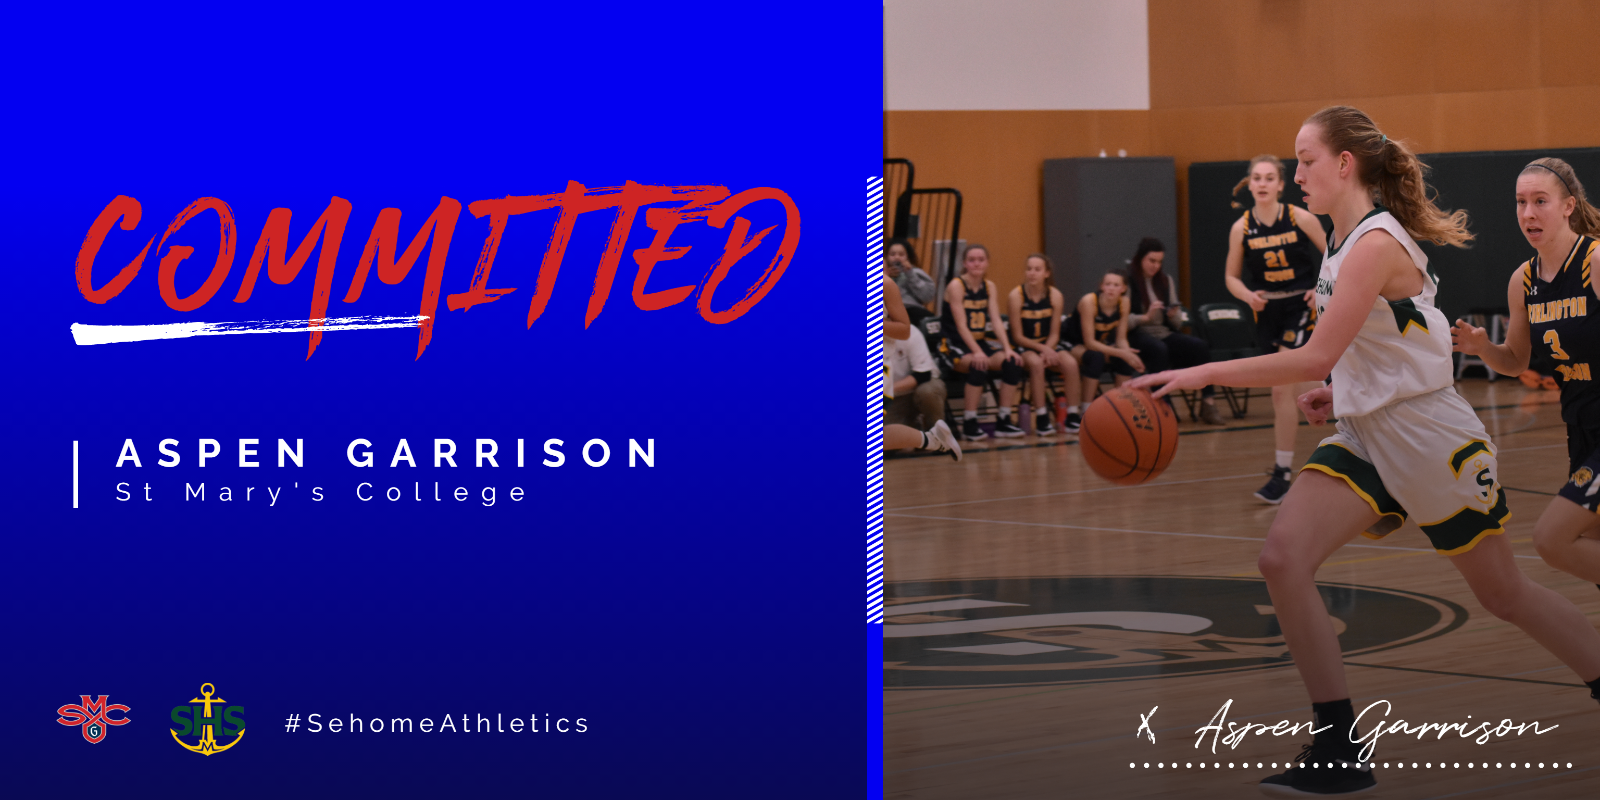 Aspen Garrison Committed to St. Mary's College